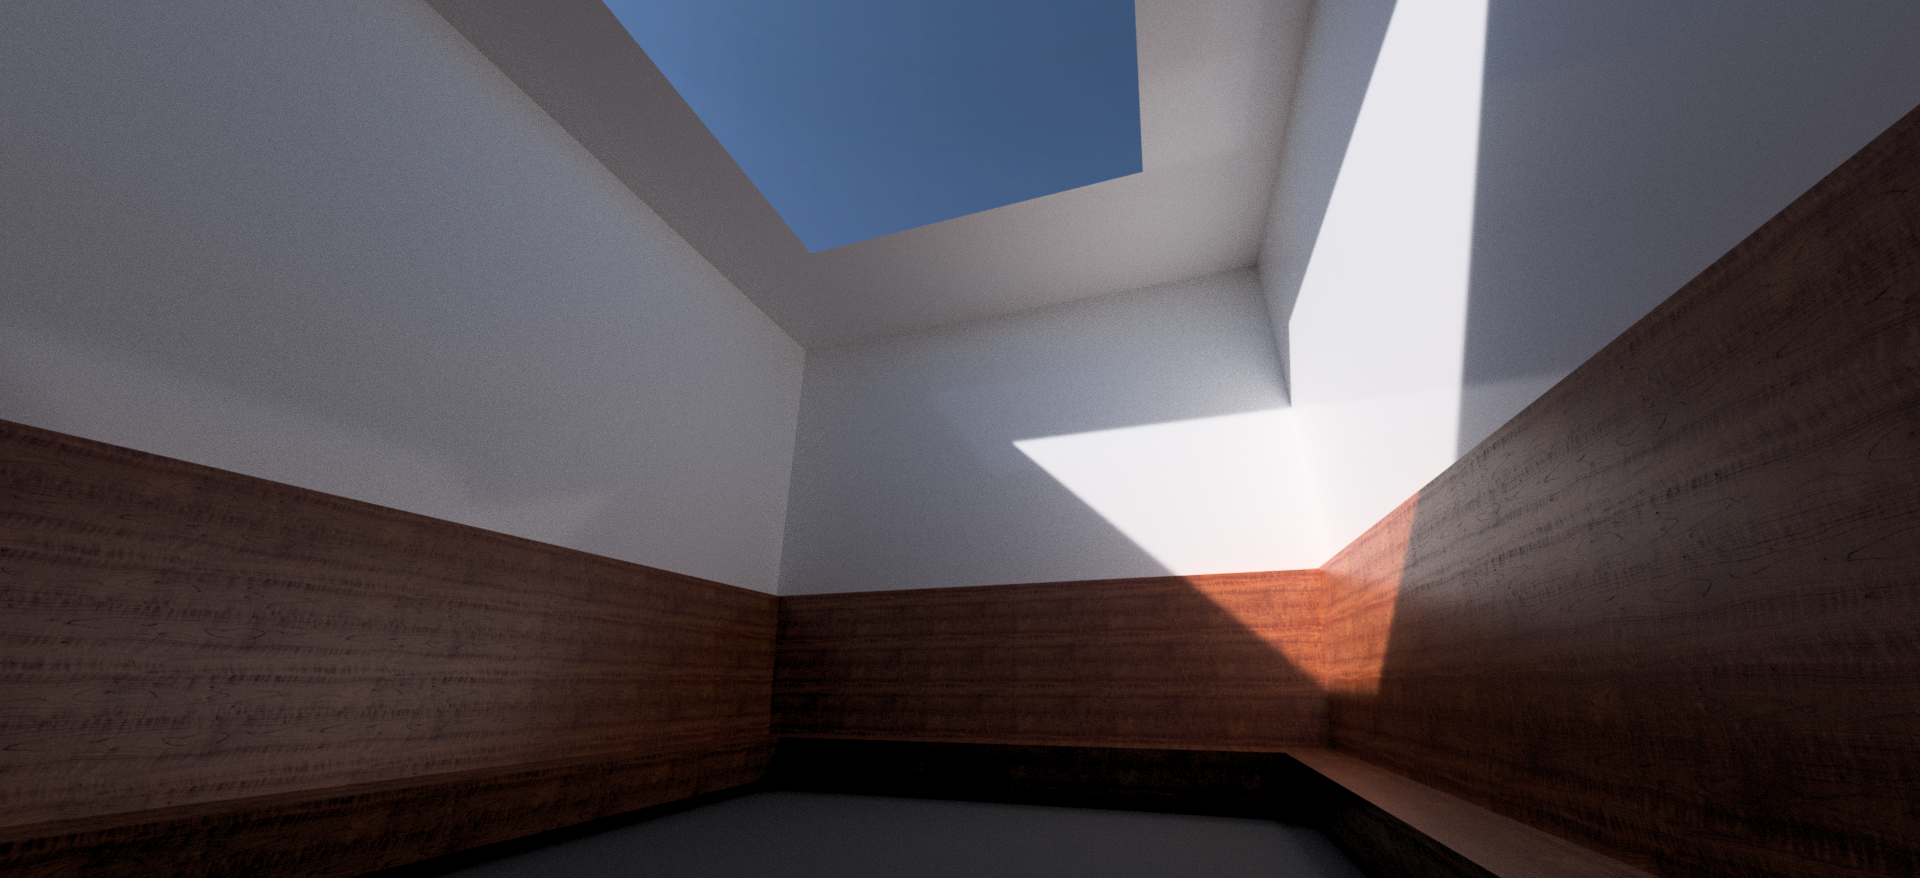 6 - Turrell Render 2